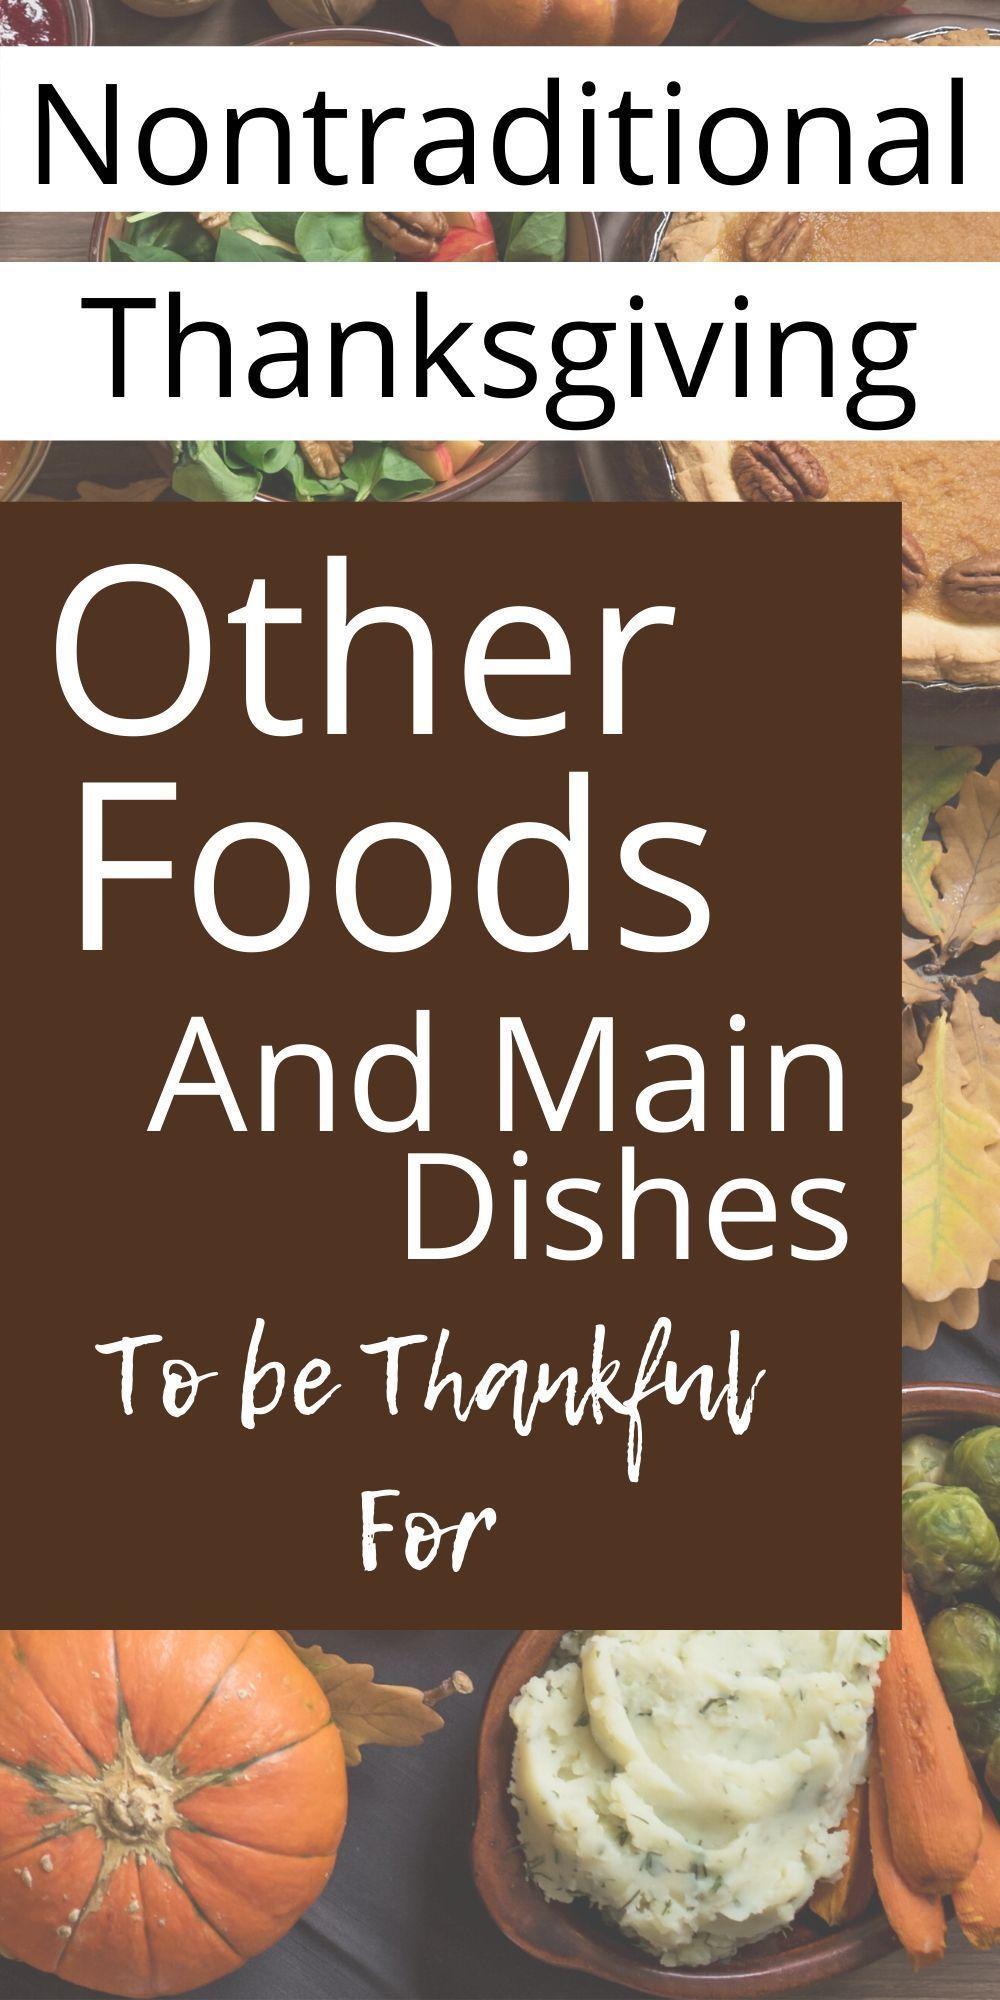 Non Traditional Thanksgiving Dinner Ideas It Doesn T Have To Be Turkey Manda J In 2020 Traditional Thanksgiving Dinner Thanksgiving Dinner Traditional Turkey Recipes